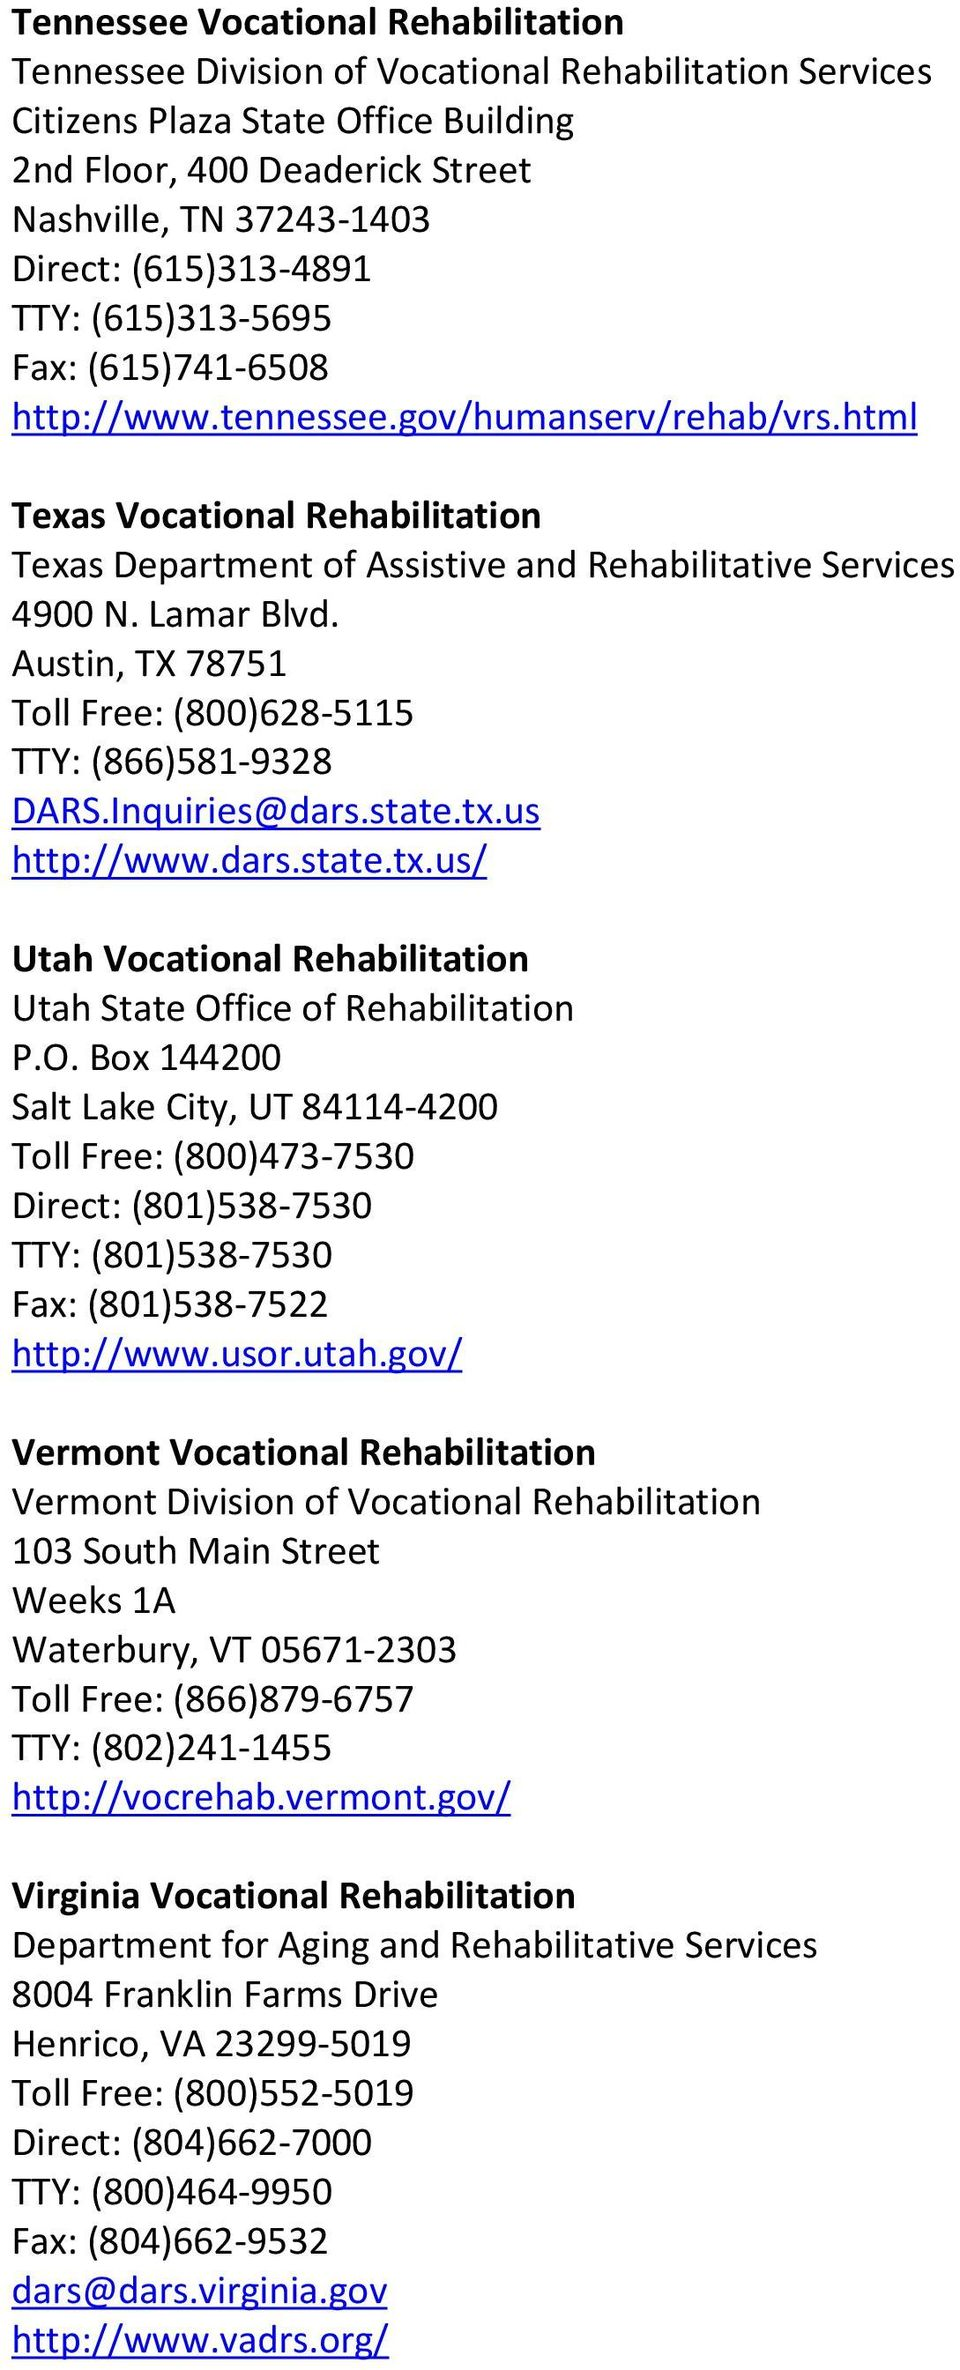 Lamar Blvd. Austin, TX 78751 Toll Free: (800)628-5115 TTY: (866)581-9328 DARS.Inquiries@dars.state.tx.us http://www.dars.state.tx.us/ Utah Vocational Rehabilitation Utah State Office of Rehabilitation P.